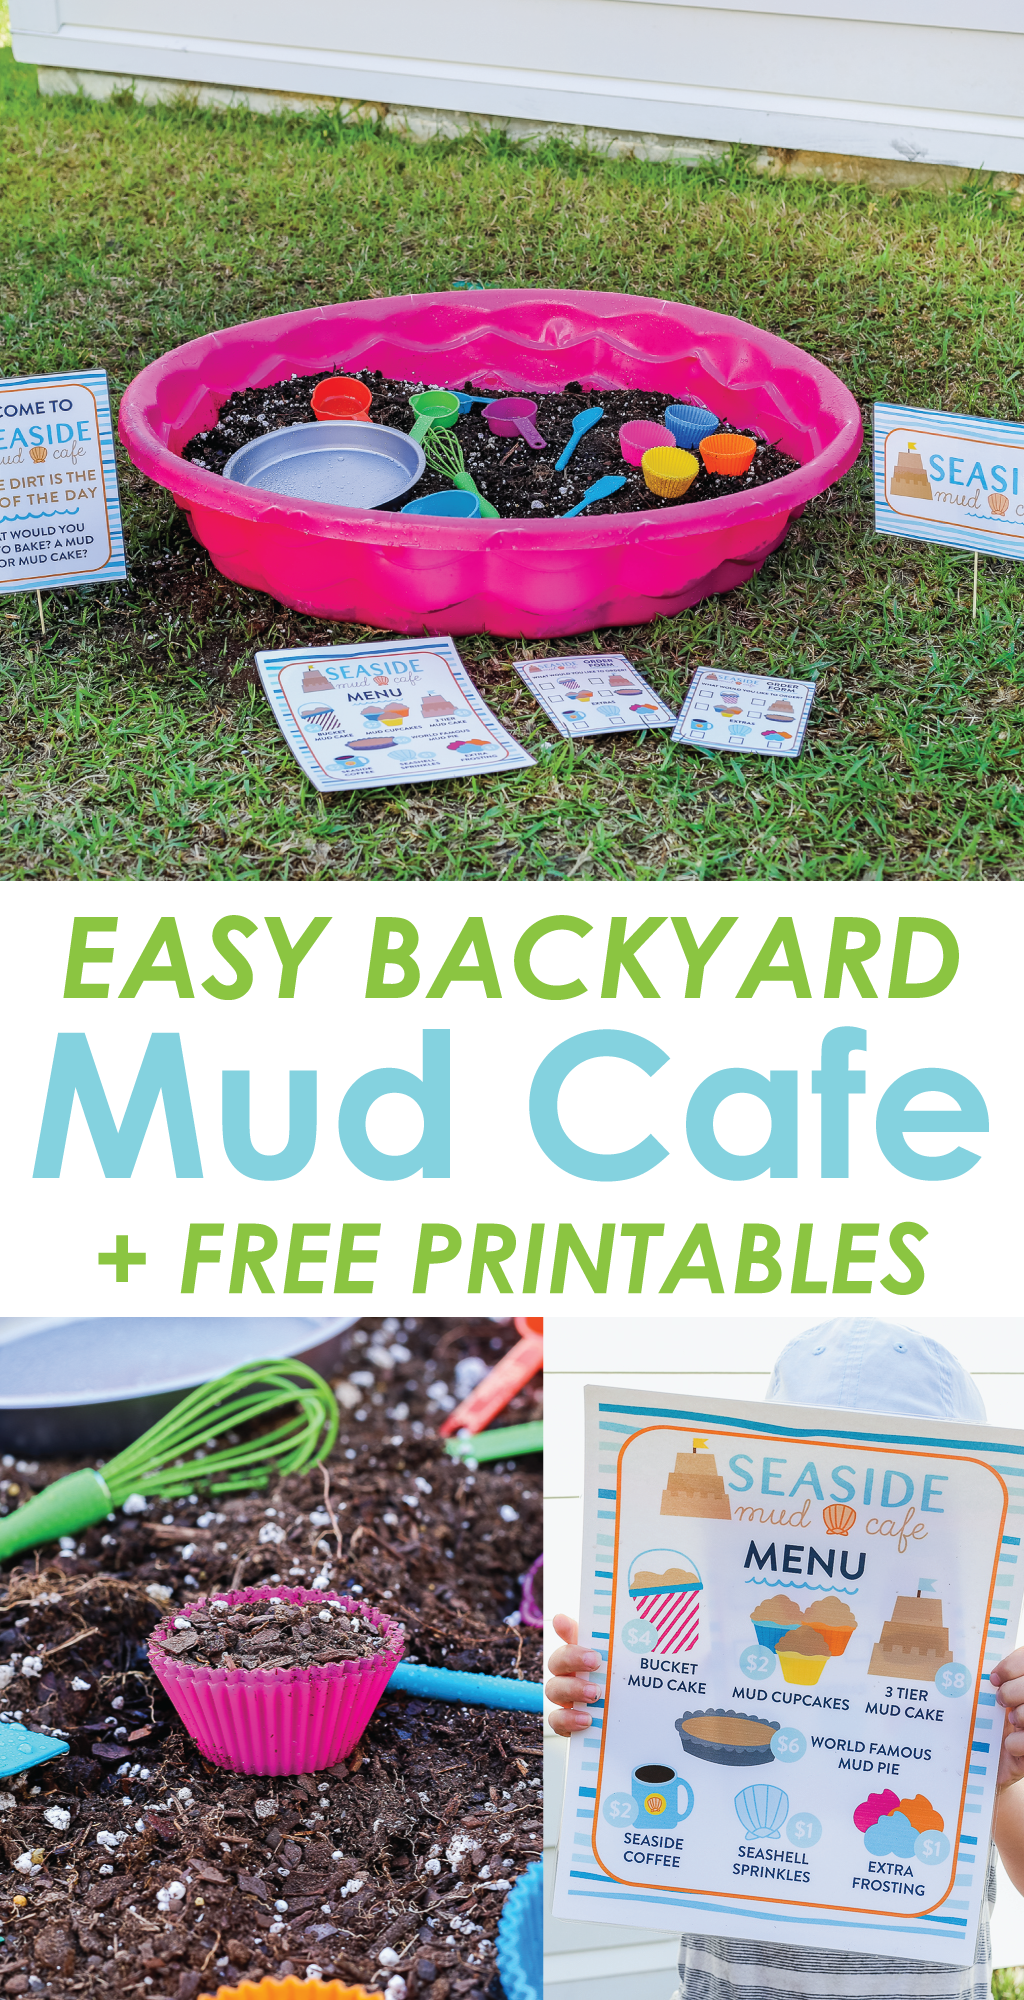 Backyard Mud Cafe